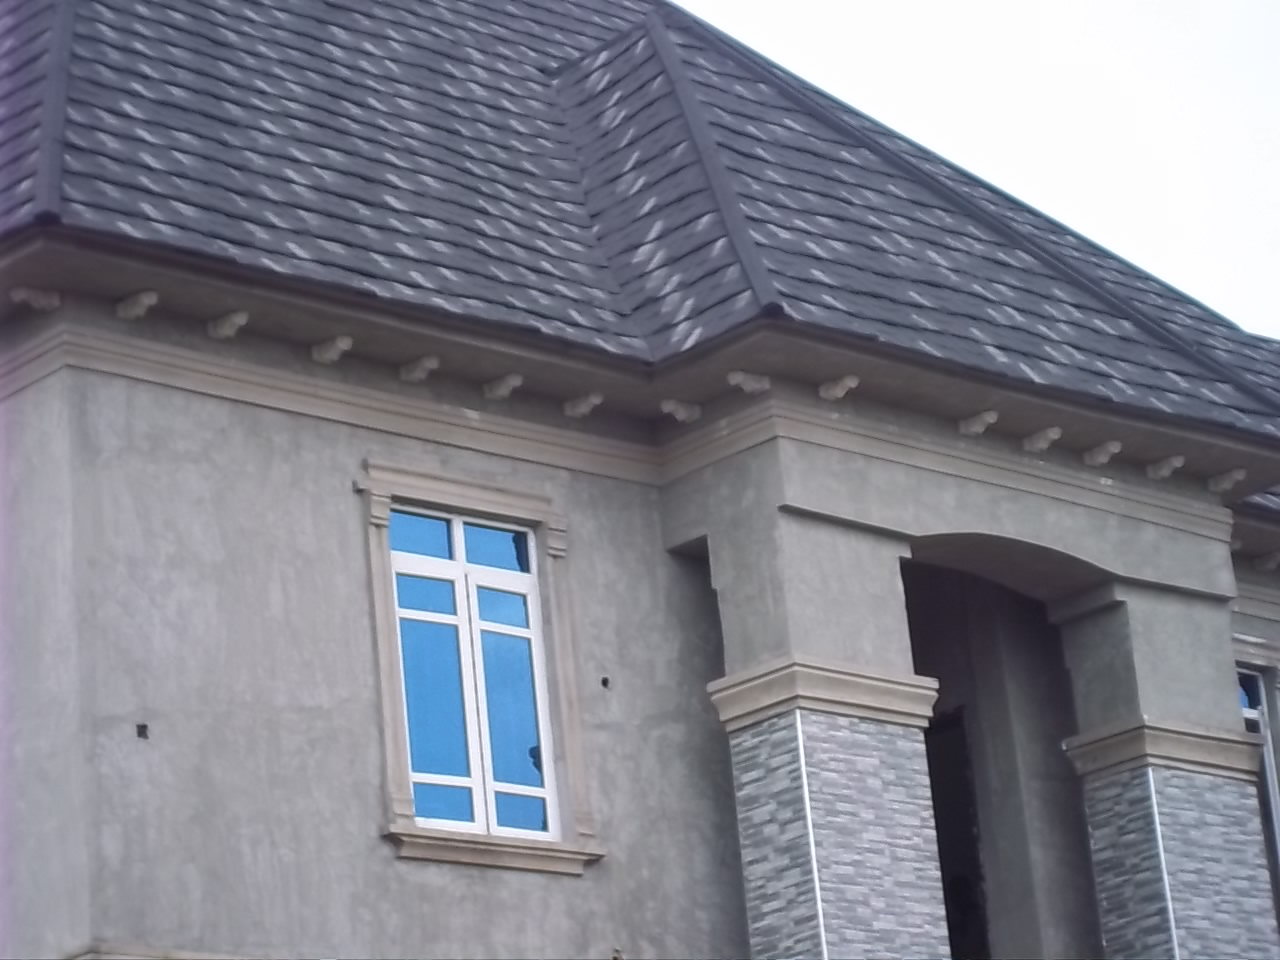 Parapet designs on bungalows in nigeria for Parapet roof design pictures